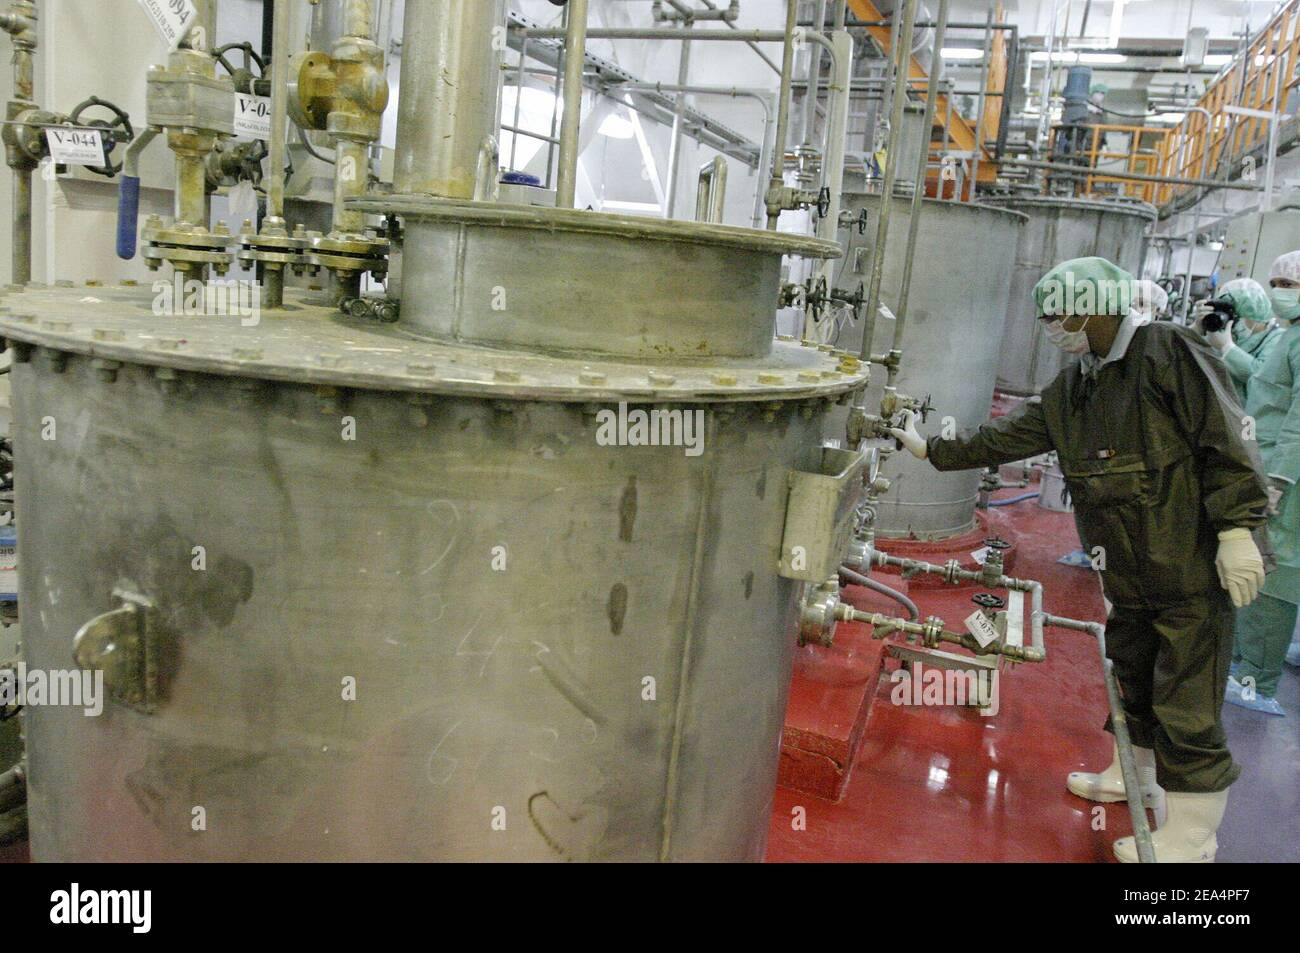 Iranian technicians work in the Uranium Conversion Facility (UCF) in Isfahan, Iran, on November 20, 2004. Iran said nuclear processing is set to resume at the Isfahan plant, the largest of its type in the country, on Wednesday. France, Britain and Germany have warned Iran of a major international crisis if the country goes ahead with its plans. Photo by ABACAPRESS.COM Stock Photo